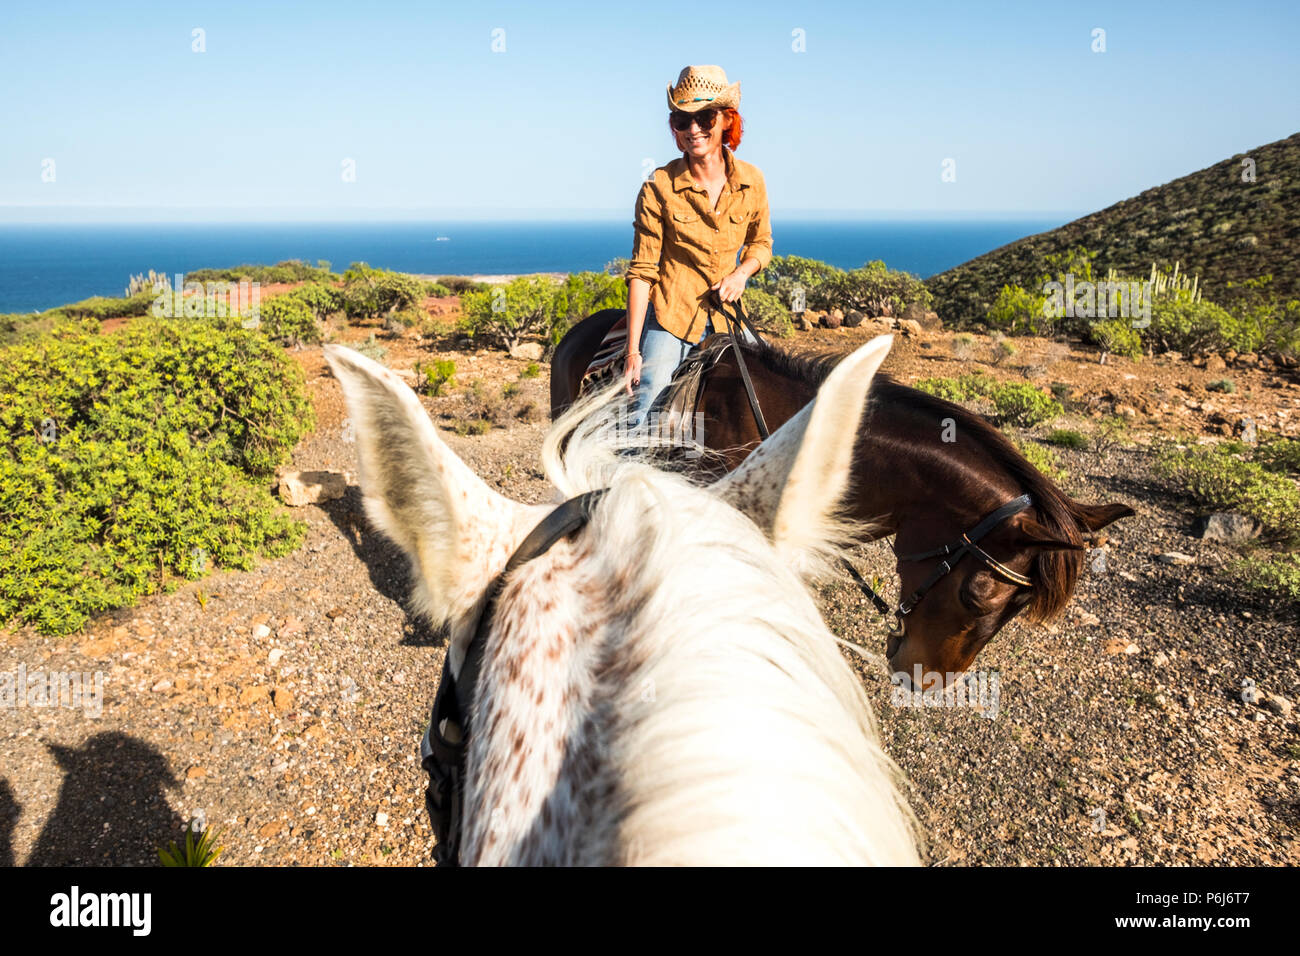 smiling beautiful red hair lady young ride a horse. view from another rider and whit ehorse. leisure activity outdoor with fun in couple. horse therap - Stock Image